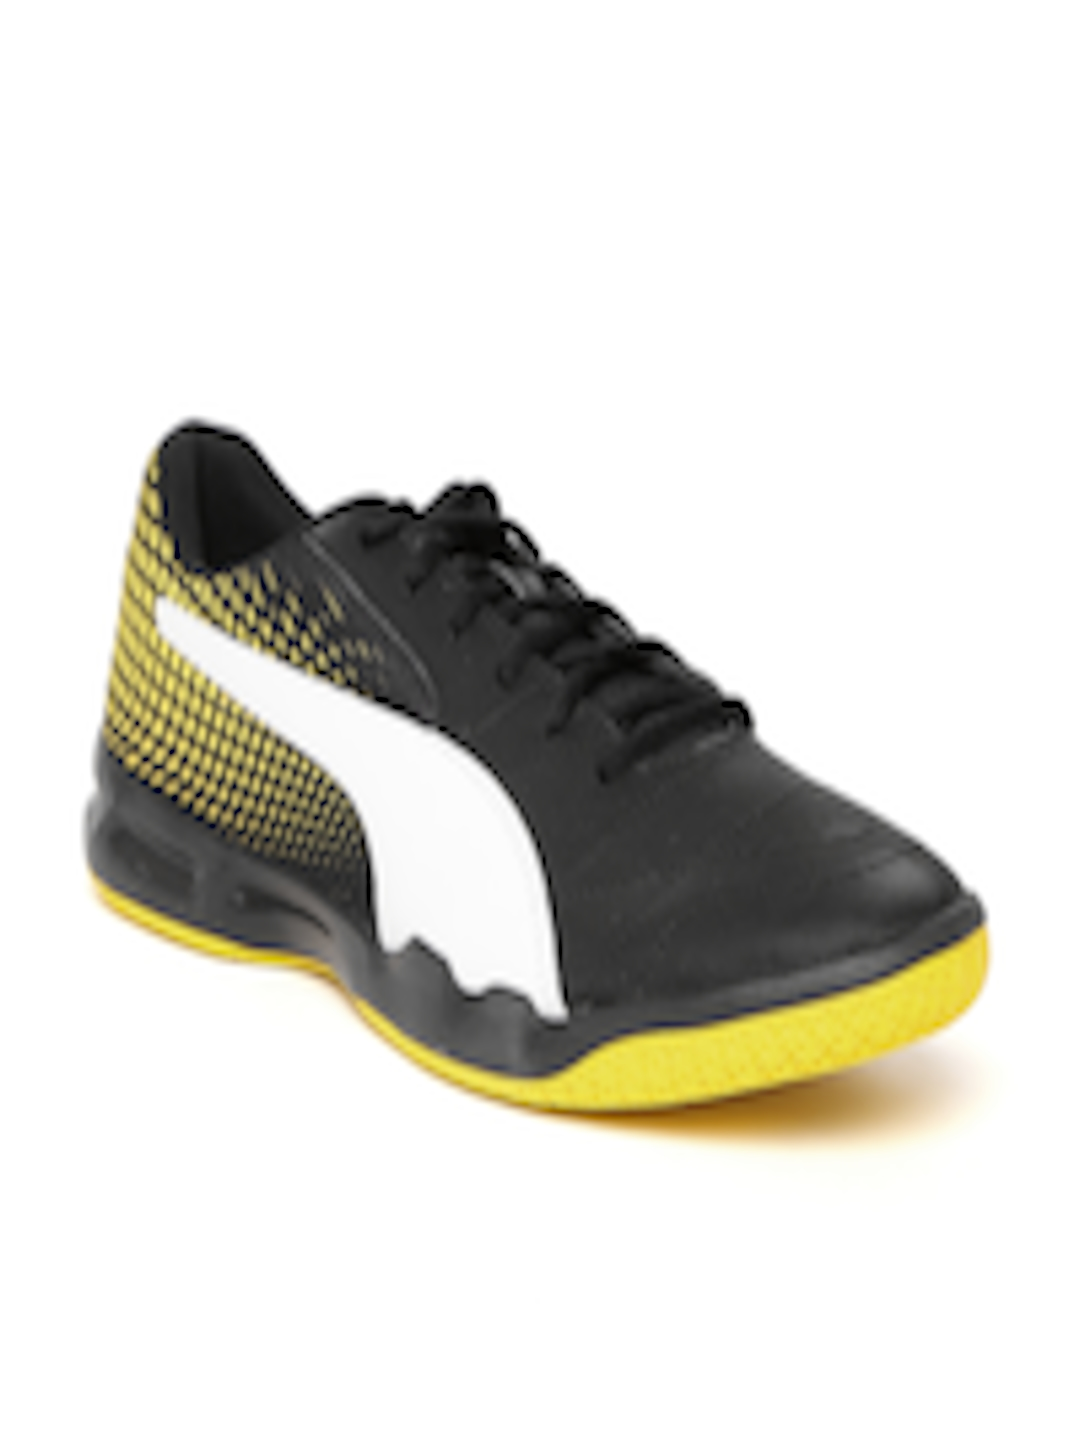 4ecebc82f08 Buy Puma Men Black Veloz Indoor NG Badminton Shoes - Sports Shoes for Men  2454580